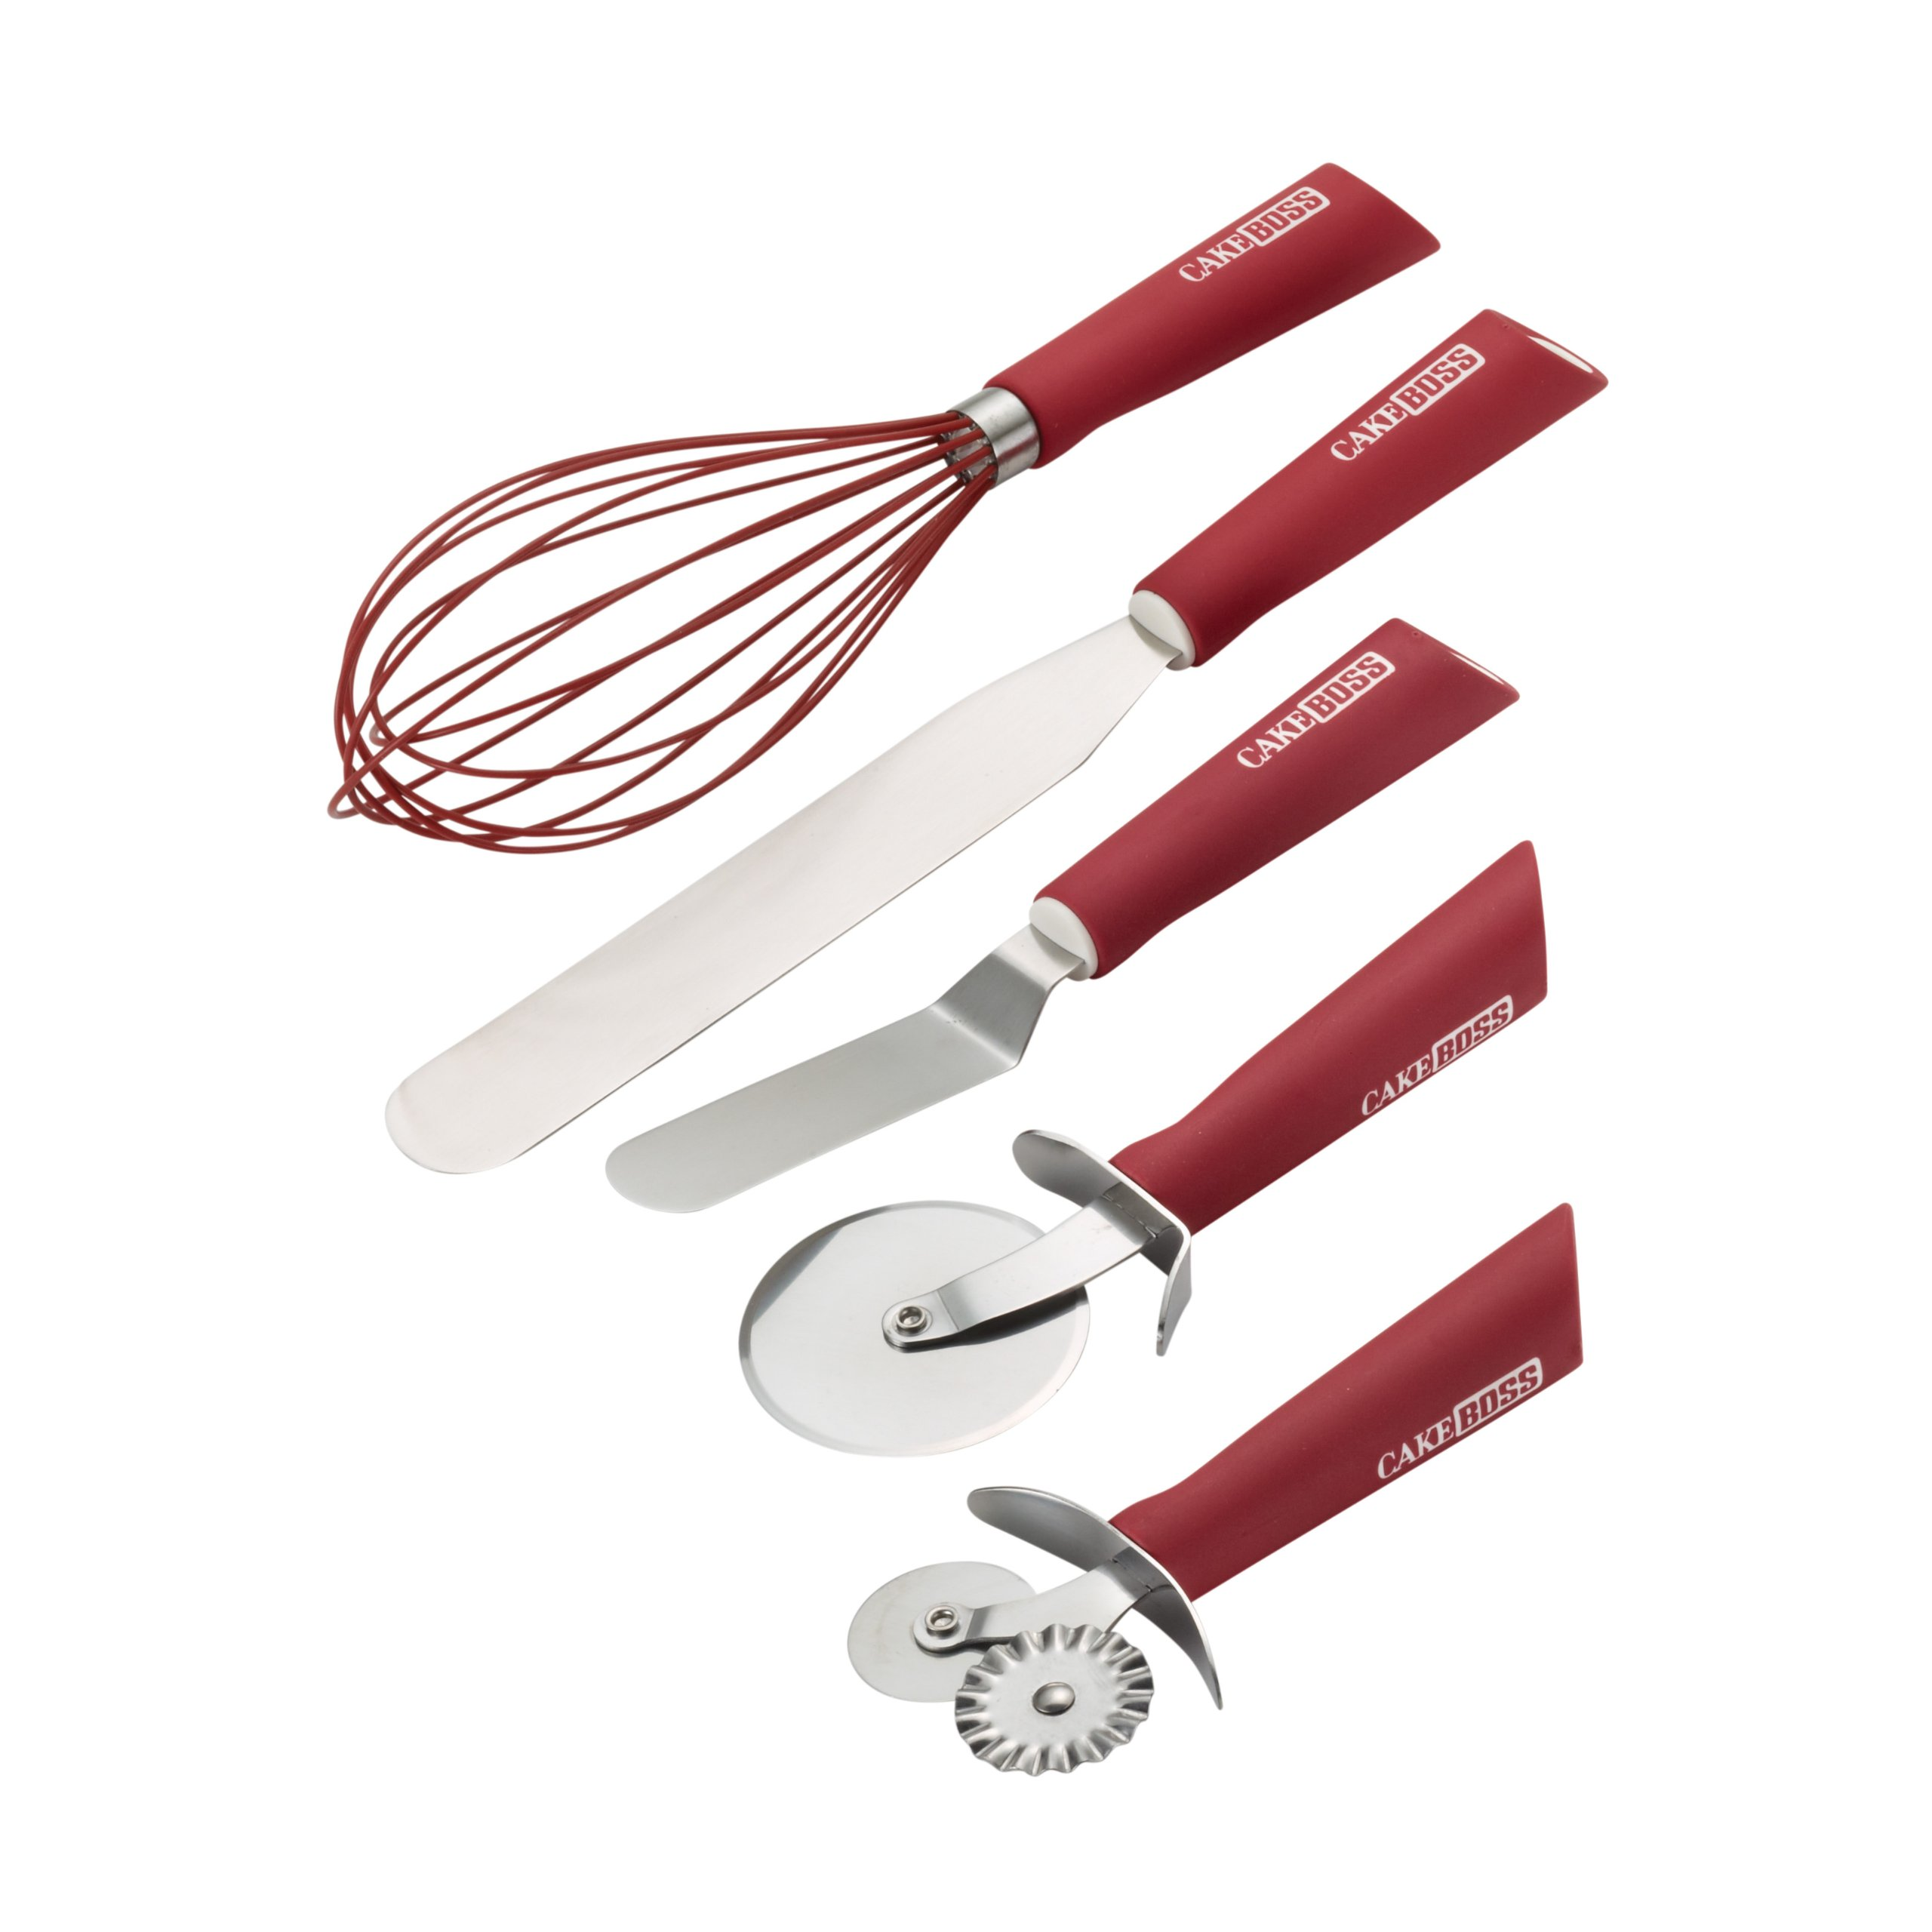 Cake Boss Stainless Steel Tools and Gadgets 5-Piece Baking and Decorating Tool Set, Red by Cake Boss